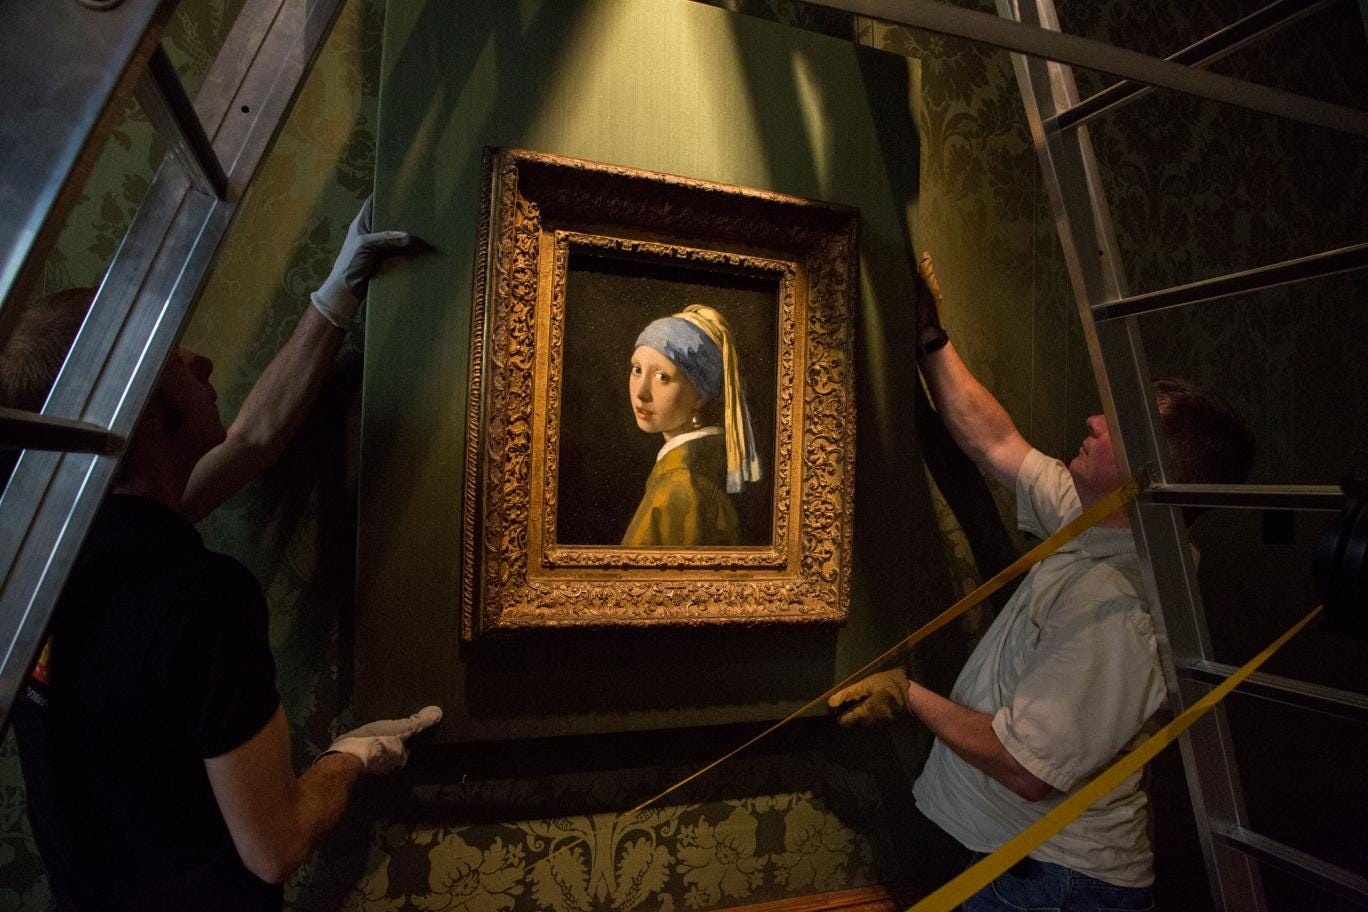 'Girl with a Pearl Earring' by Johannes Vermeer, c. 1665